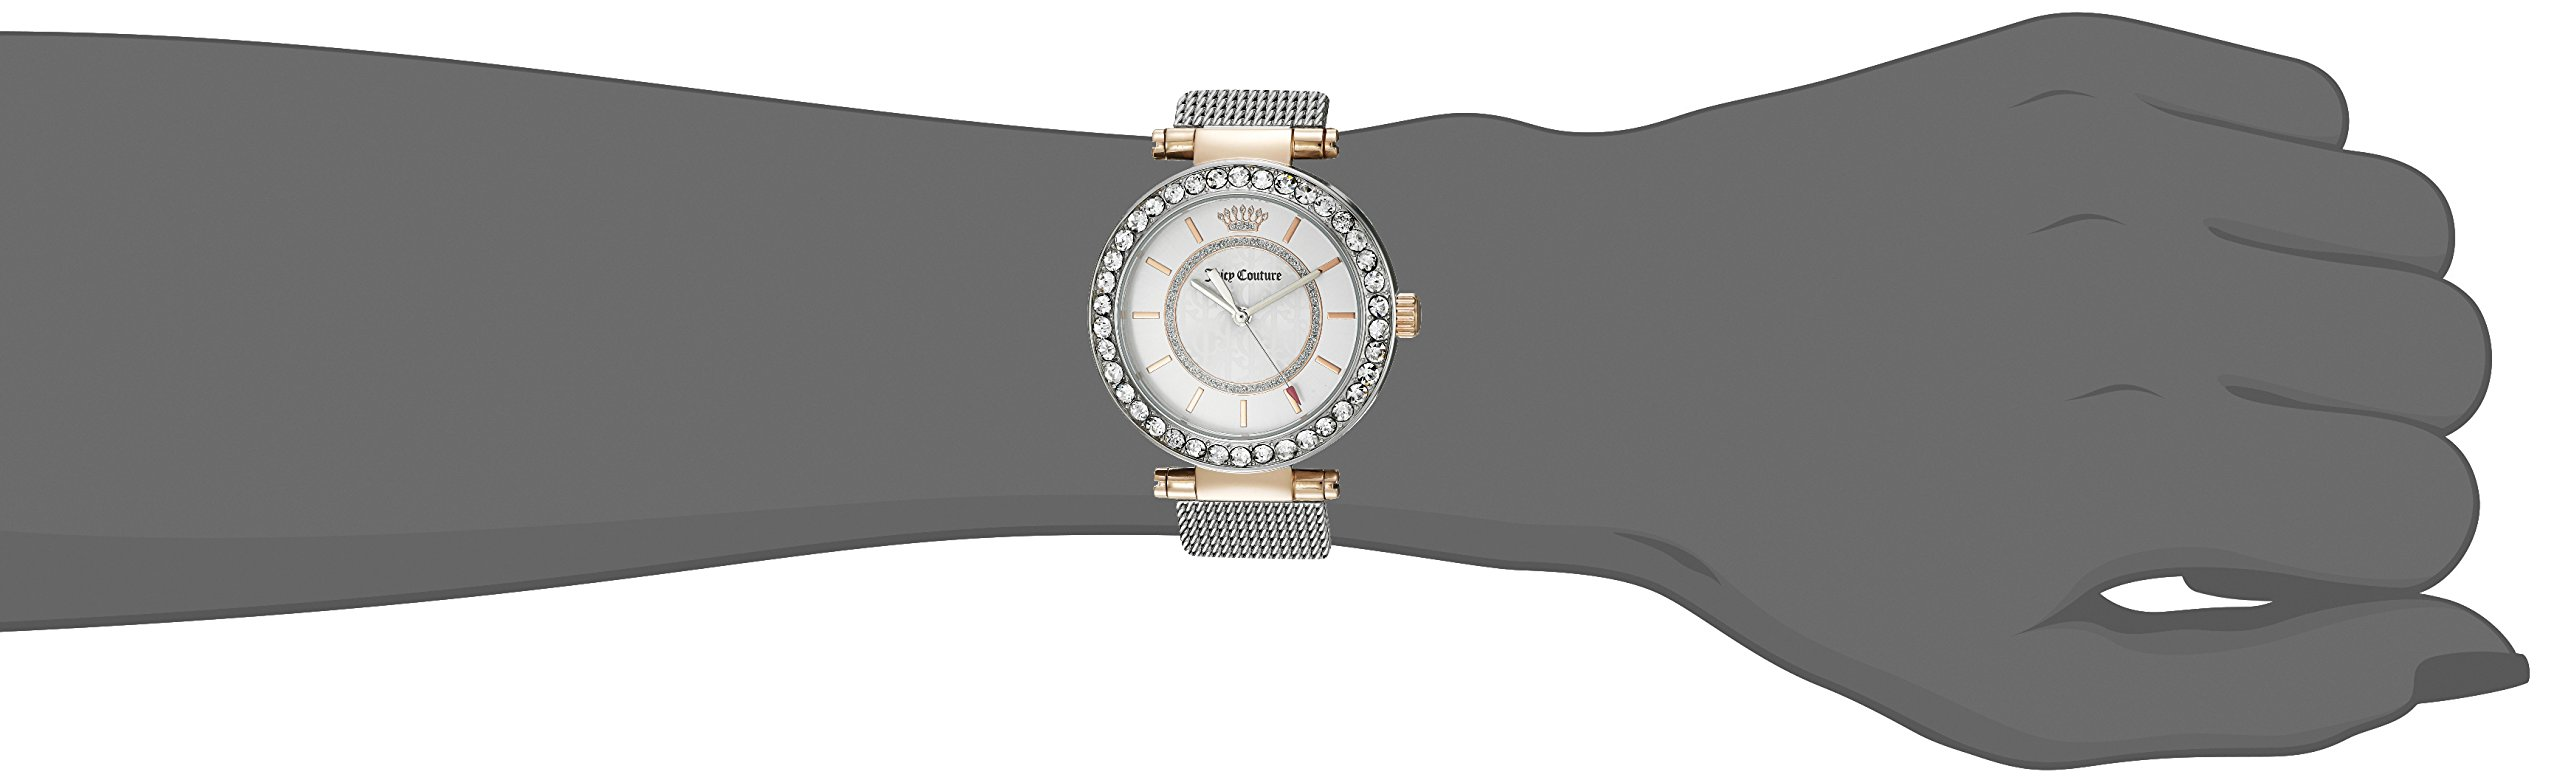 Juicy Couture Women's 1901375 Cali Analog Display Japanese Quartz Silver-Tone Watch by Juicy Couture (Image #2)